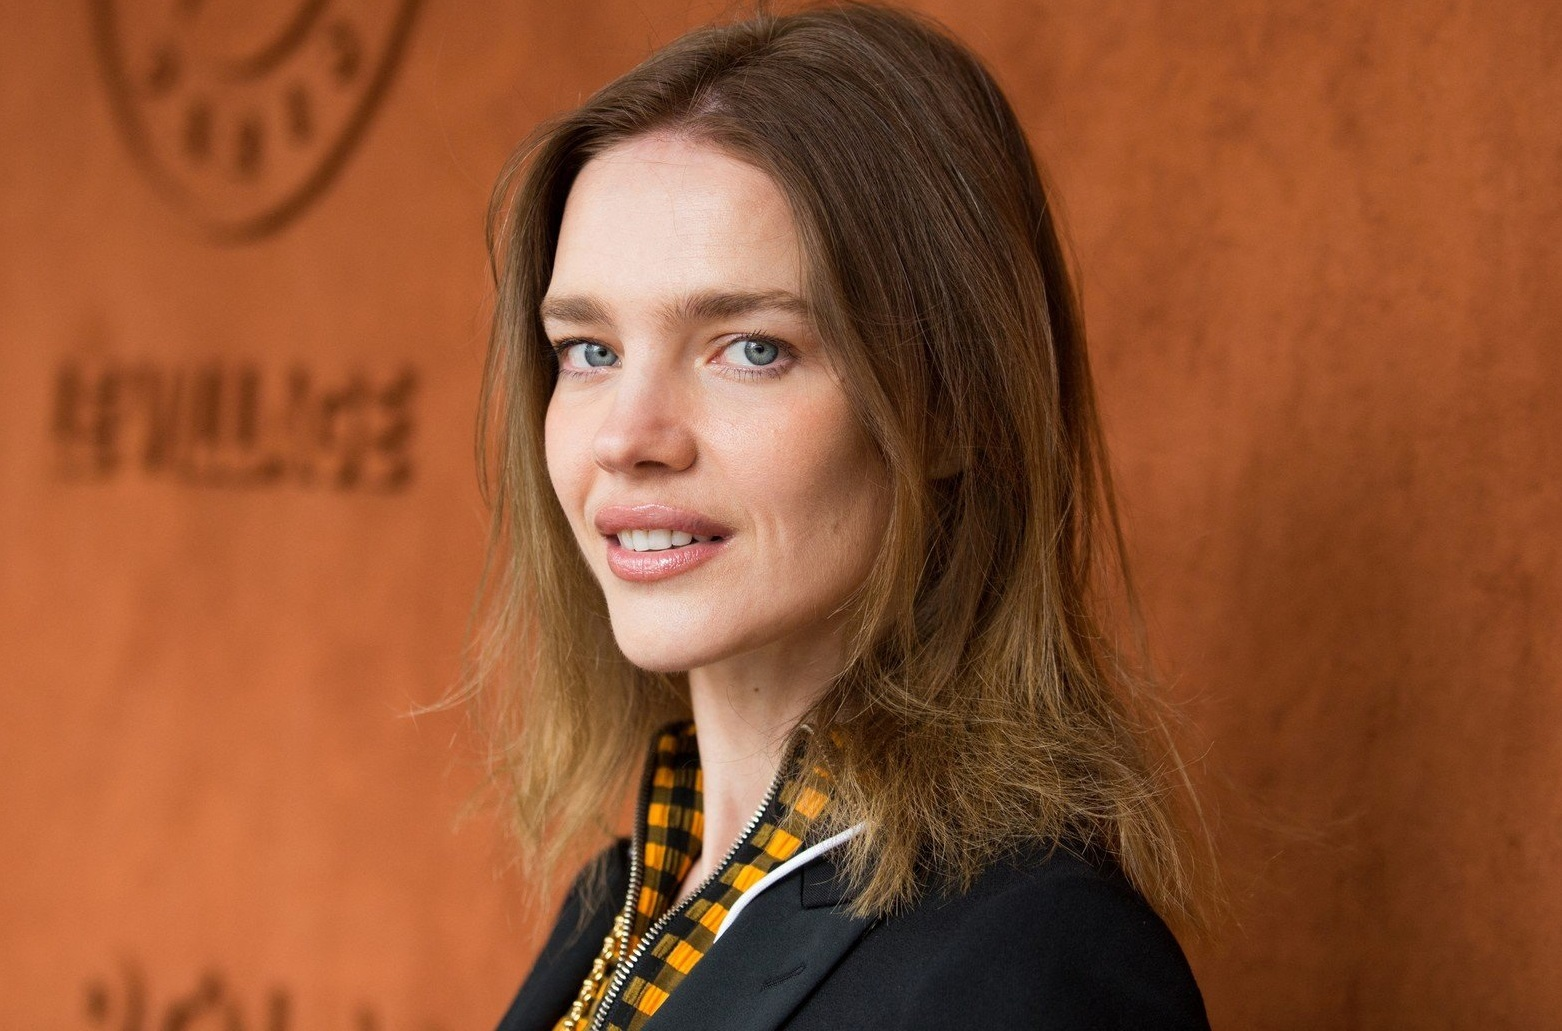 Natalia Vodianova in Village during French Tennis Open at Roland-Garros arena on June 07, 2019 in Paris, France., Image: 444189313, License: Rights-managed, Restrictions: , Model Release: no, Credit line: Profimedia, Abaca Press